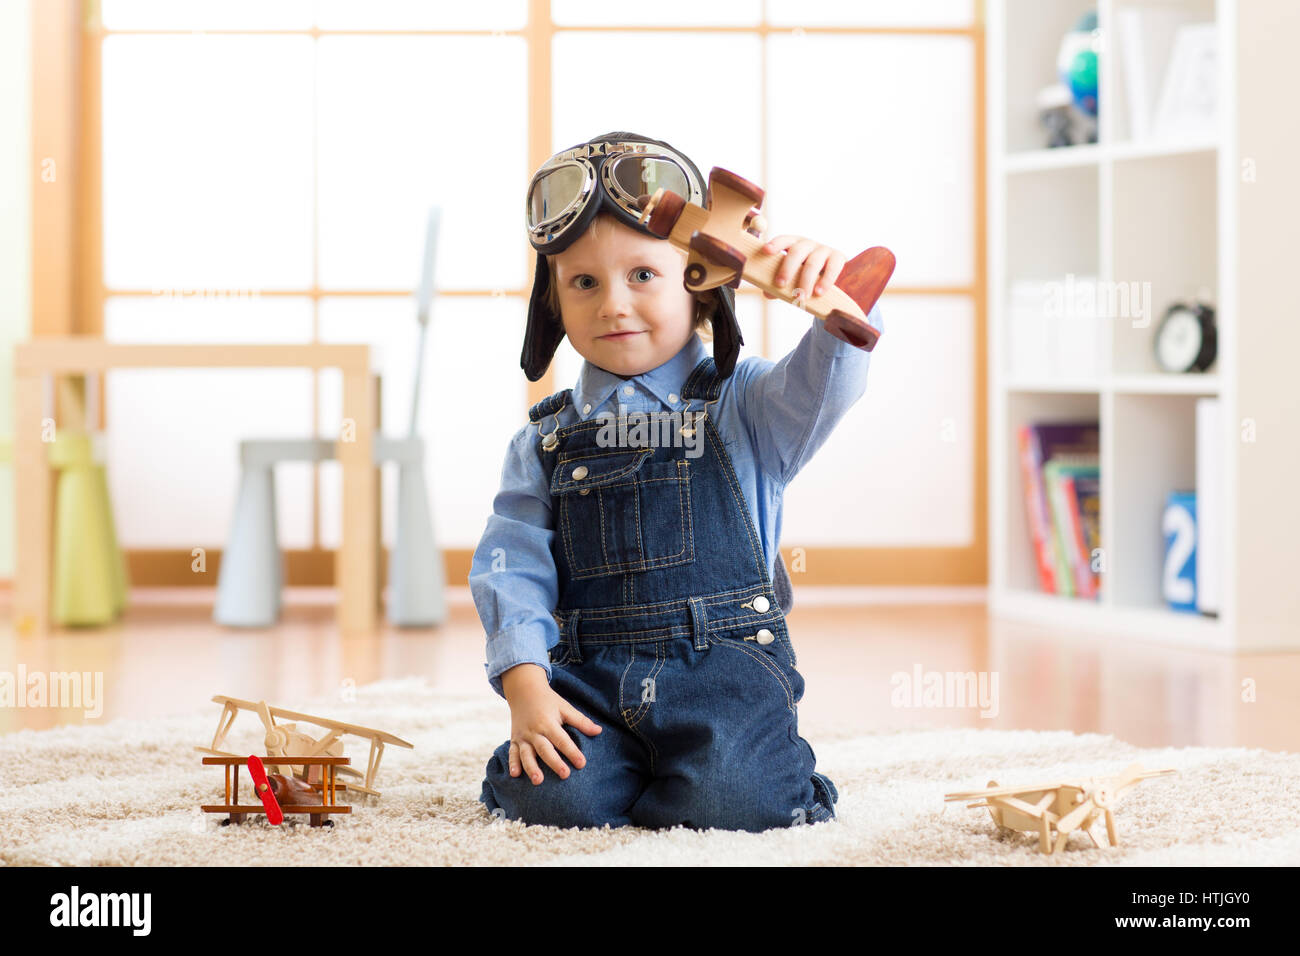 Child pretending to be aviator. Kid playing with toy airplanes at home - Stock Image